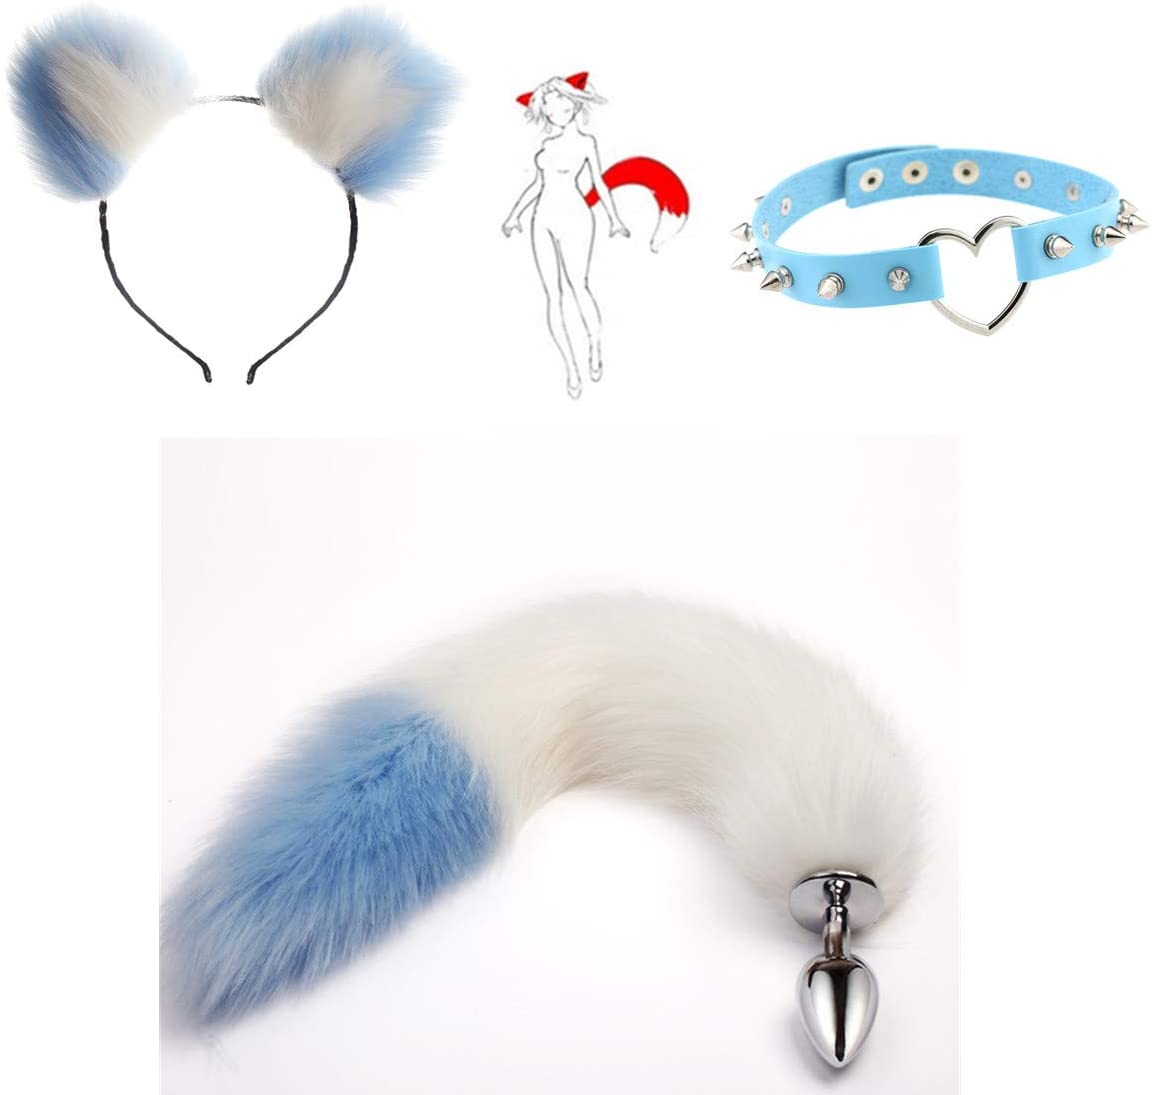 Fluffy Faux Wolf Pl-úg Tail & Ears Headband & Heart-Shape Spikes Collar Cute Role Play Costume - S